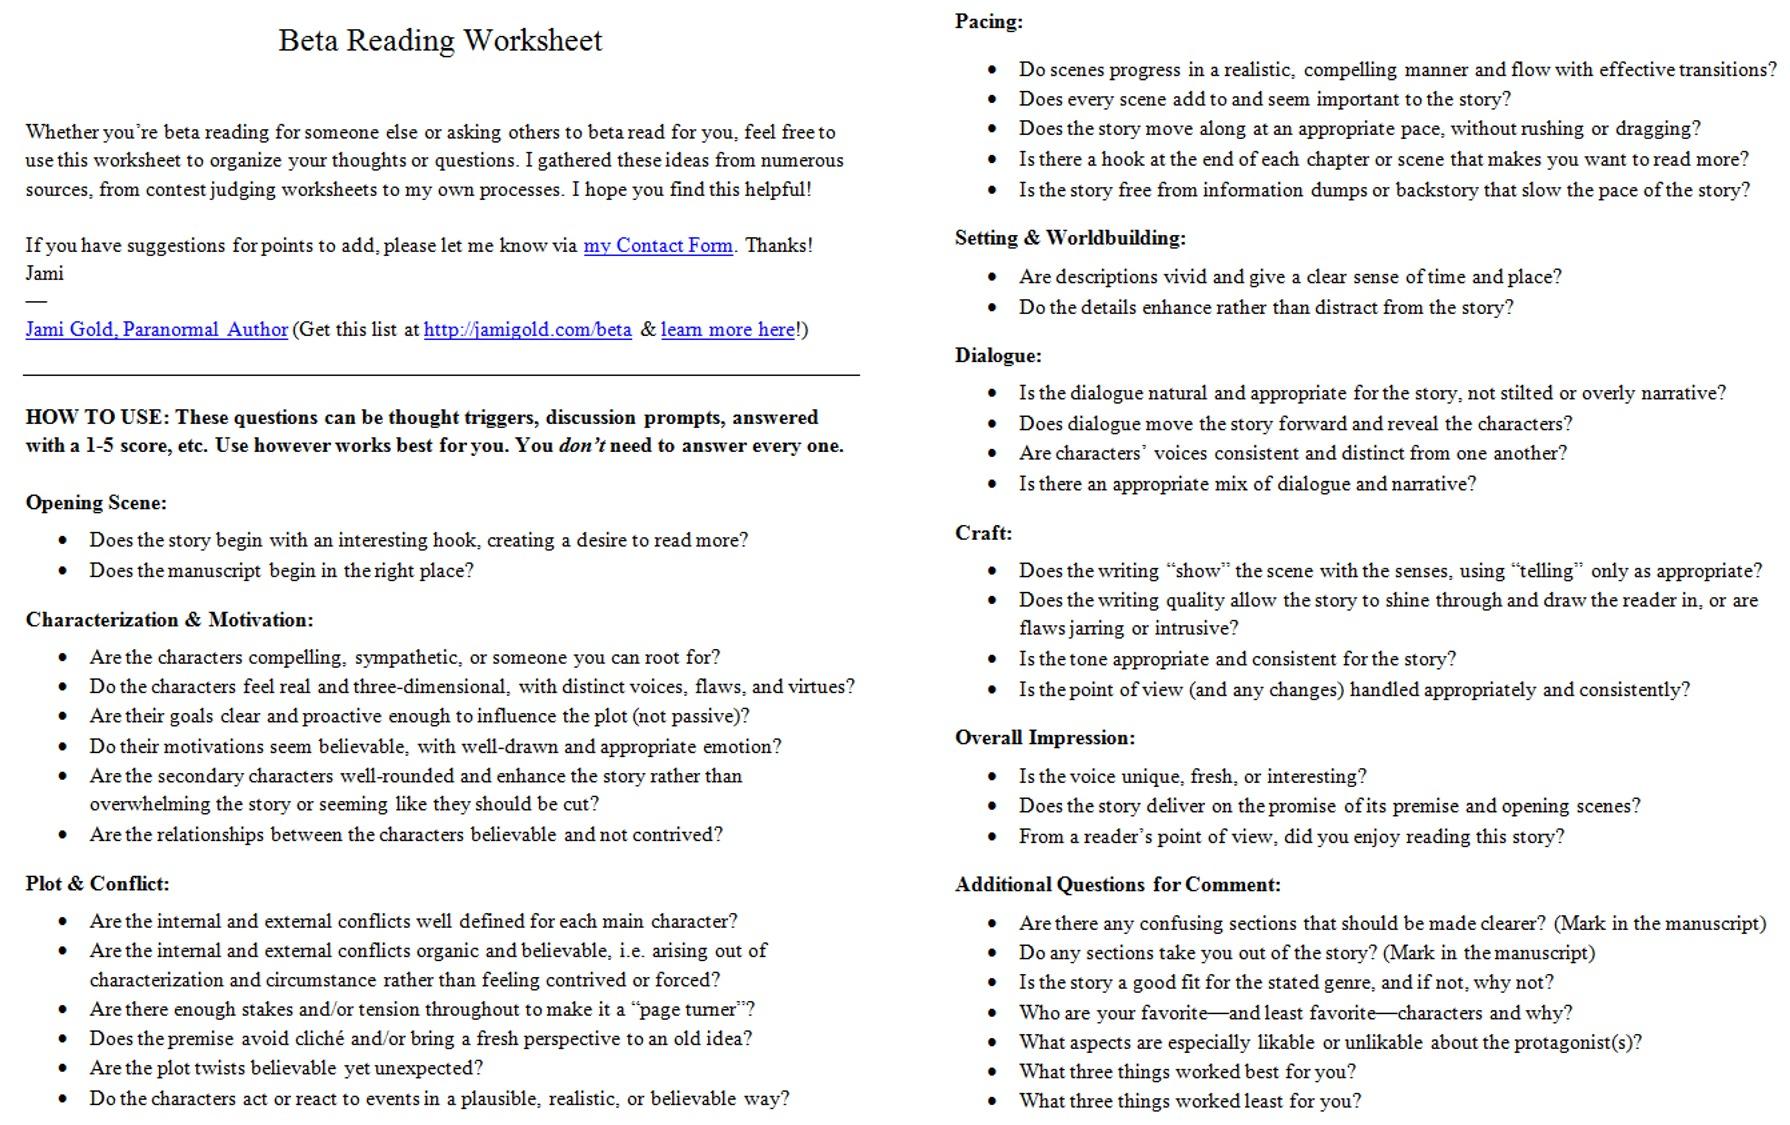 Aldiablosus  Splendid Worksheets For Writers  Jami Gold Paranormal Author With Magnificent Screen Shot Of The Twopage Beta Reading Worksheet With Charming Complements Of  Worksheets Also Beginning Middle And End Worksheets In Addition Education Com Worksheets Preschool And Free Printable Math Worksheets For Adults As Well As Irregular Plural Nouns Worksheets Additionally Upper And Lower Bounds Worksheet With Answers From Jamigoldcom With Aldiablosus  Magnificent Worksheets For Writers  Jami Gold Paranormal Author With Charming Screen Shot Of The Twopage Beta Reading Worksheet And Splendid Complements Of  Worksheets Also Beginning Middle And End Worksheets In Addition Education Com Worksheets Preschool From Jamigoldcom